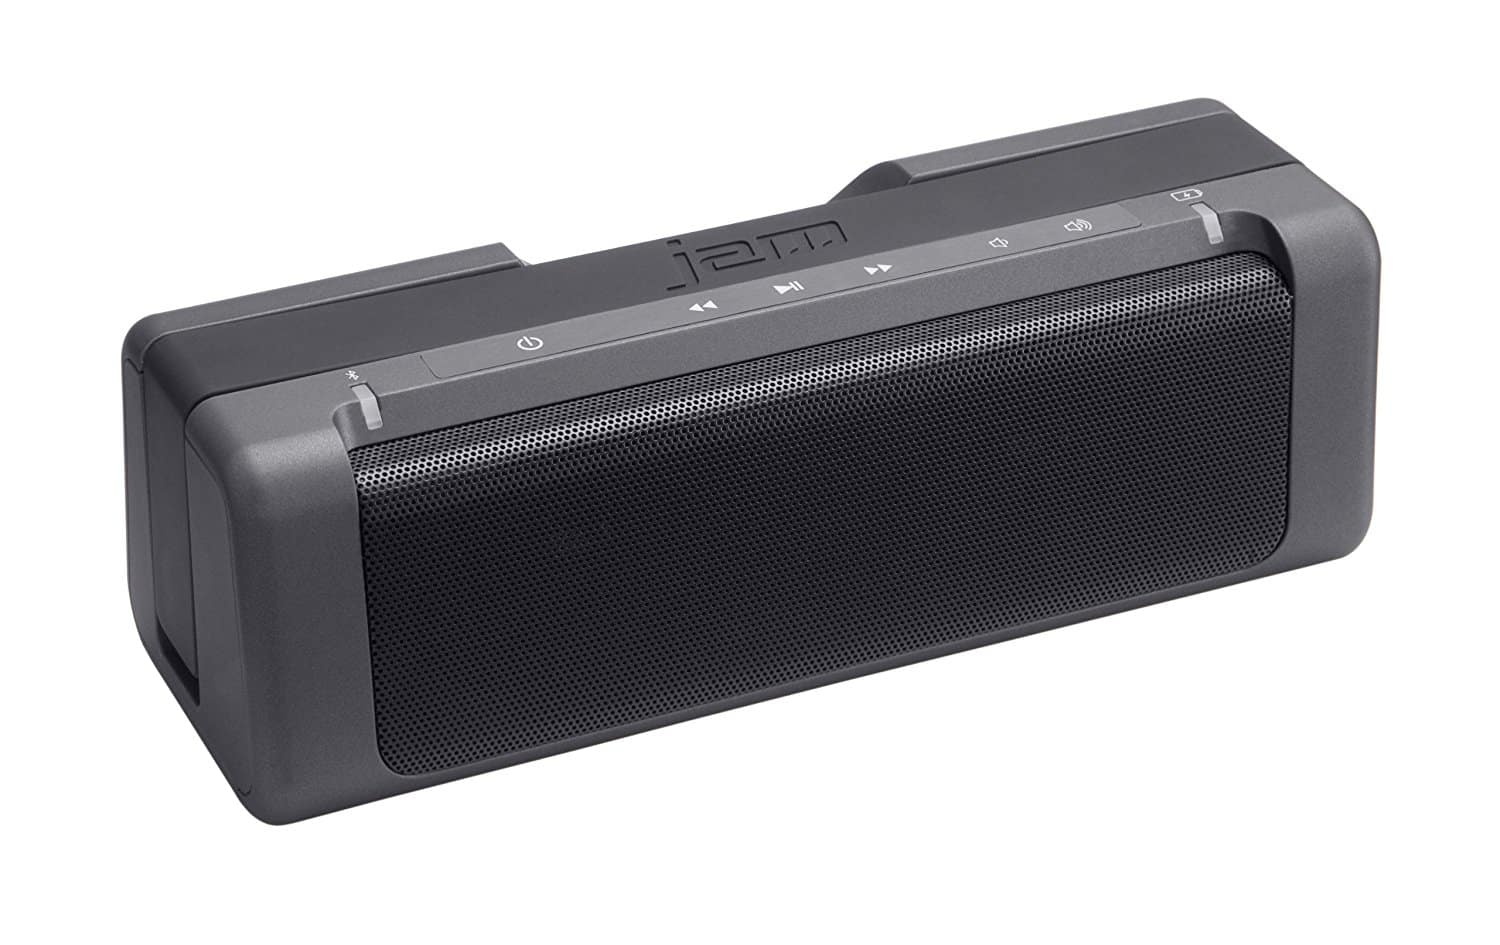 JAM Party Wireless Boom Box - $27.99 @Amazon